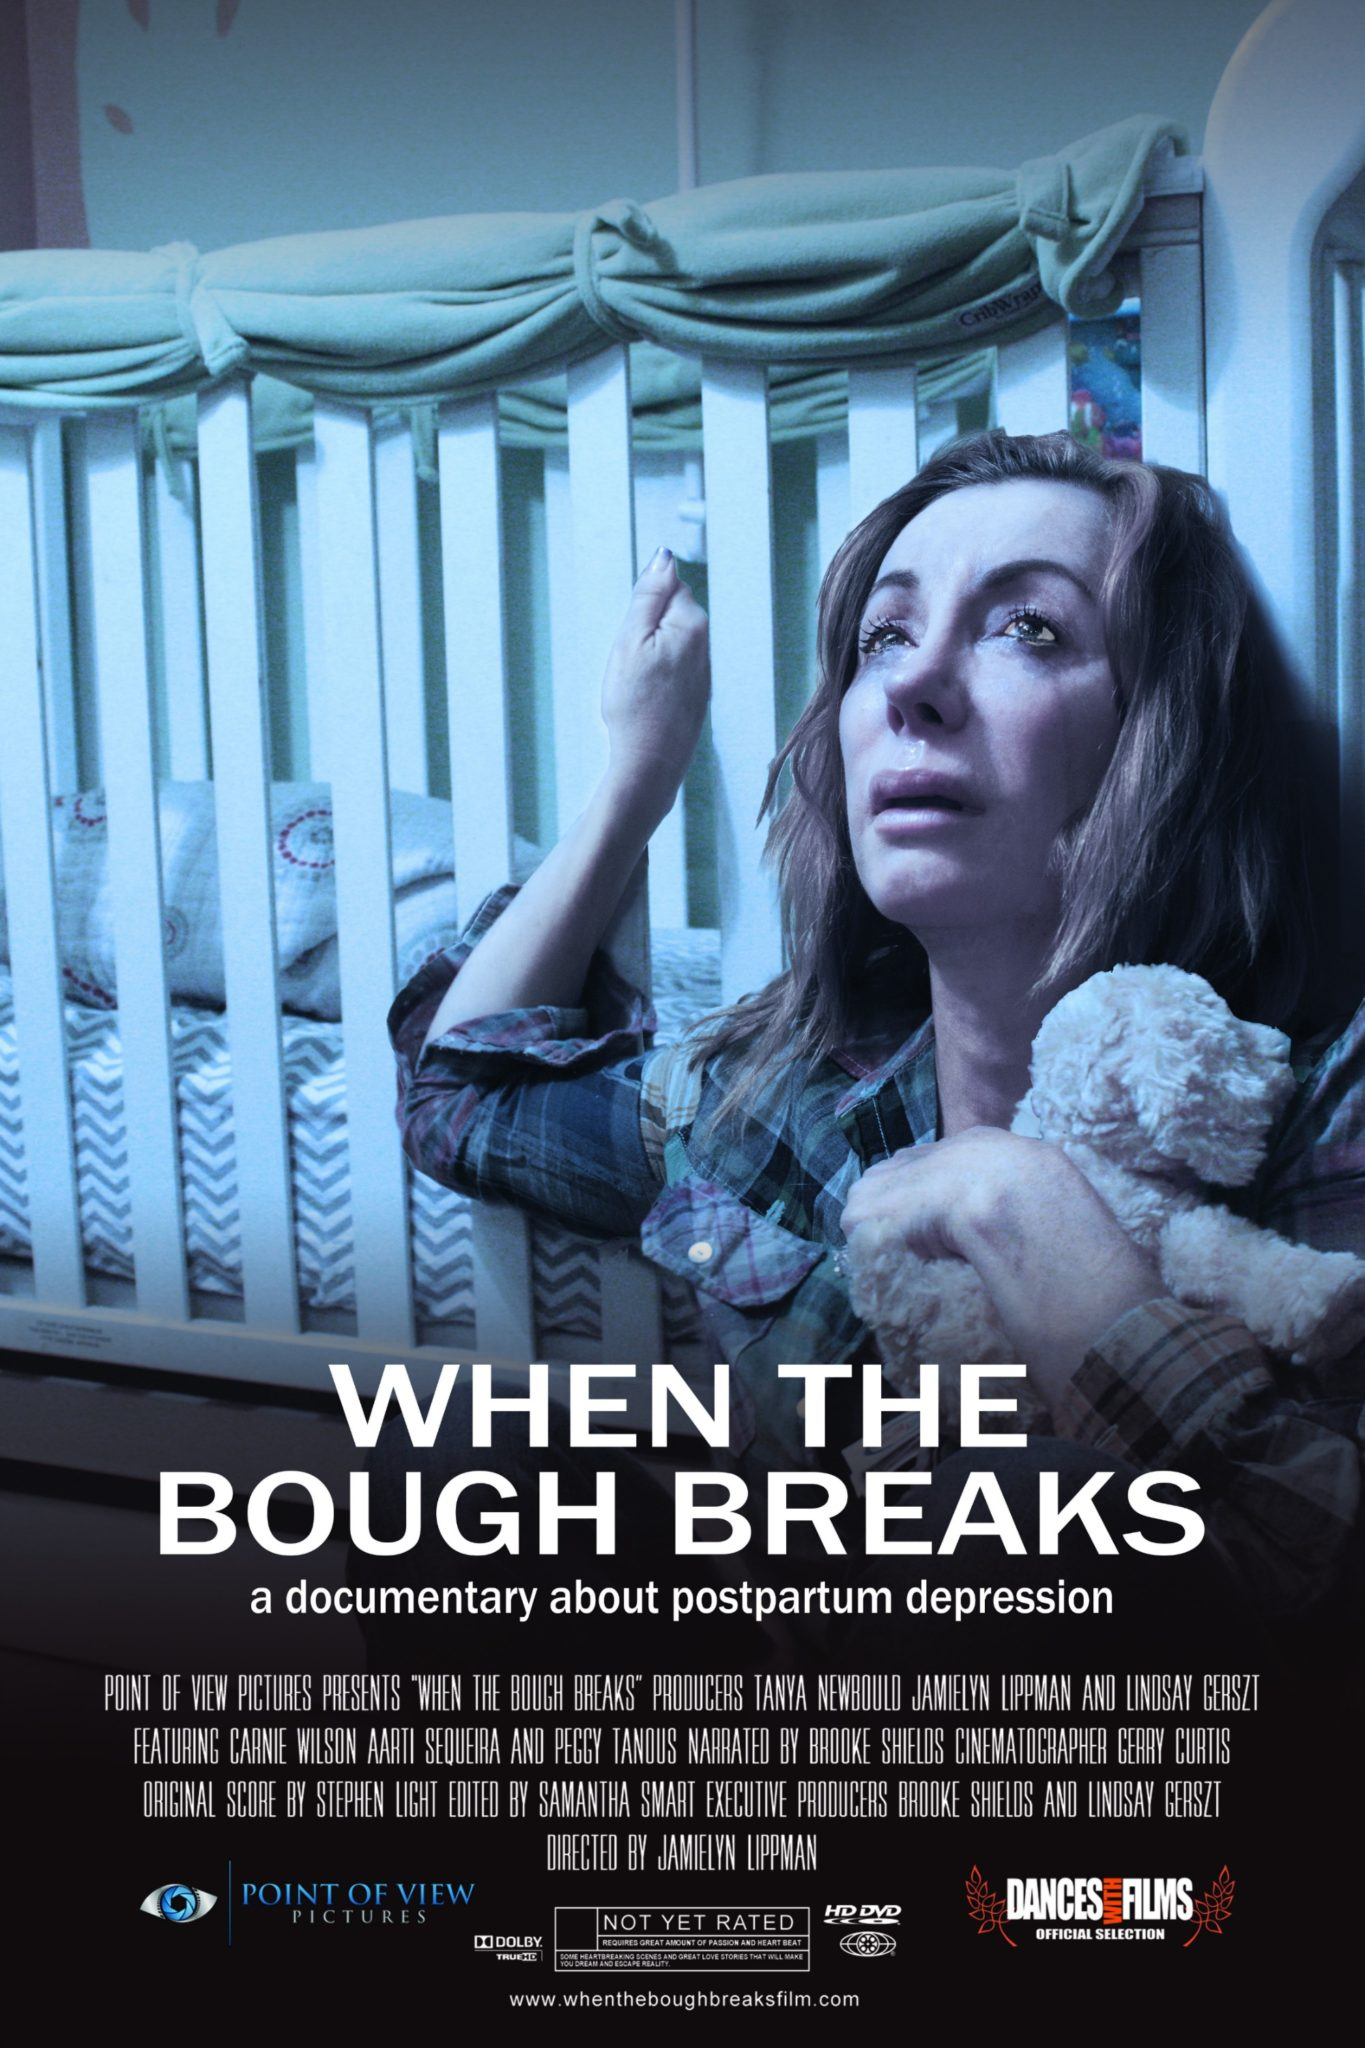 When the Bough Breaks Documentary